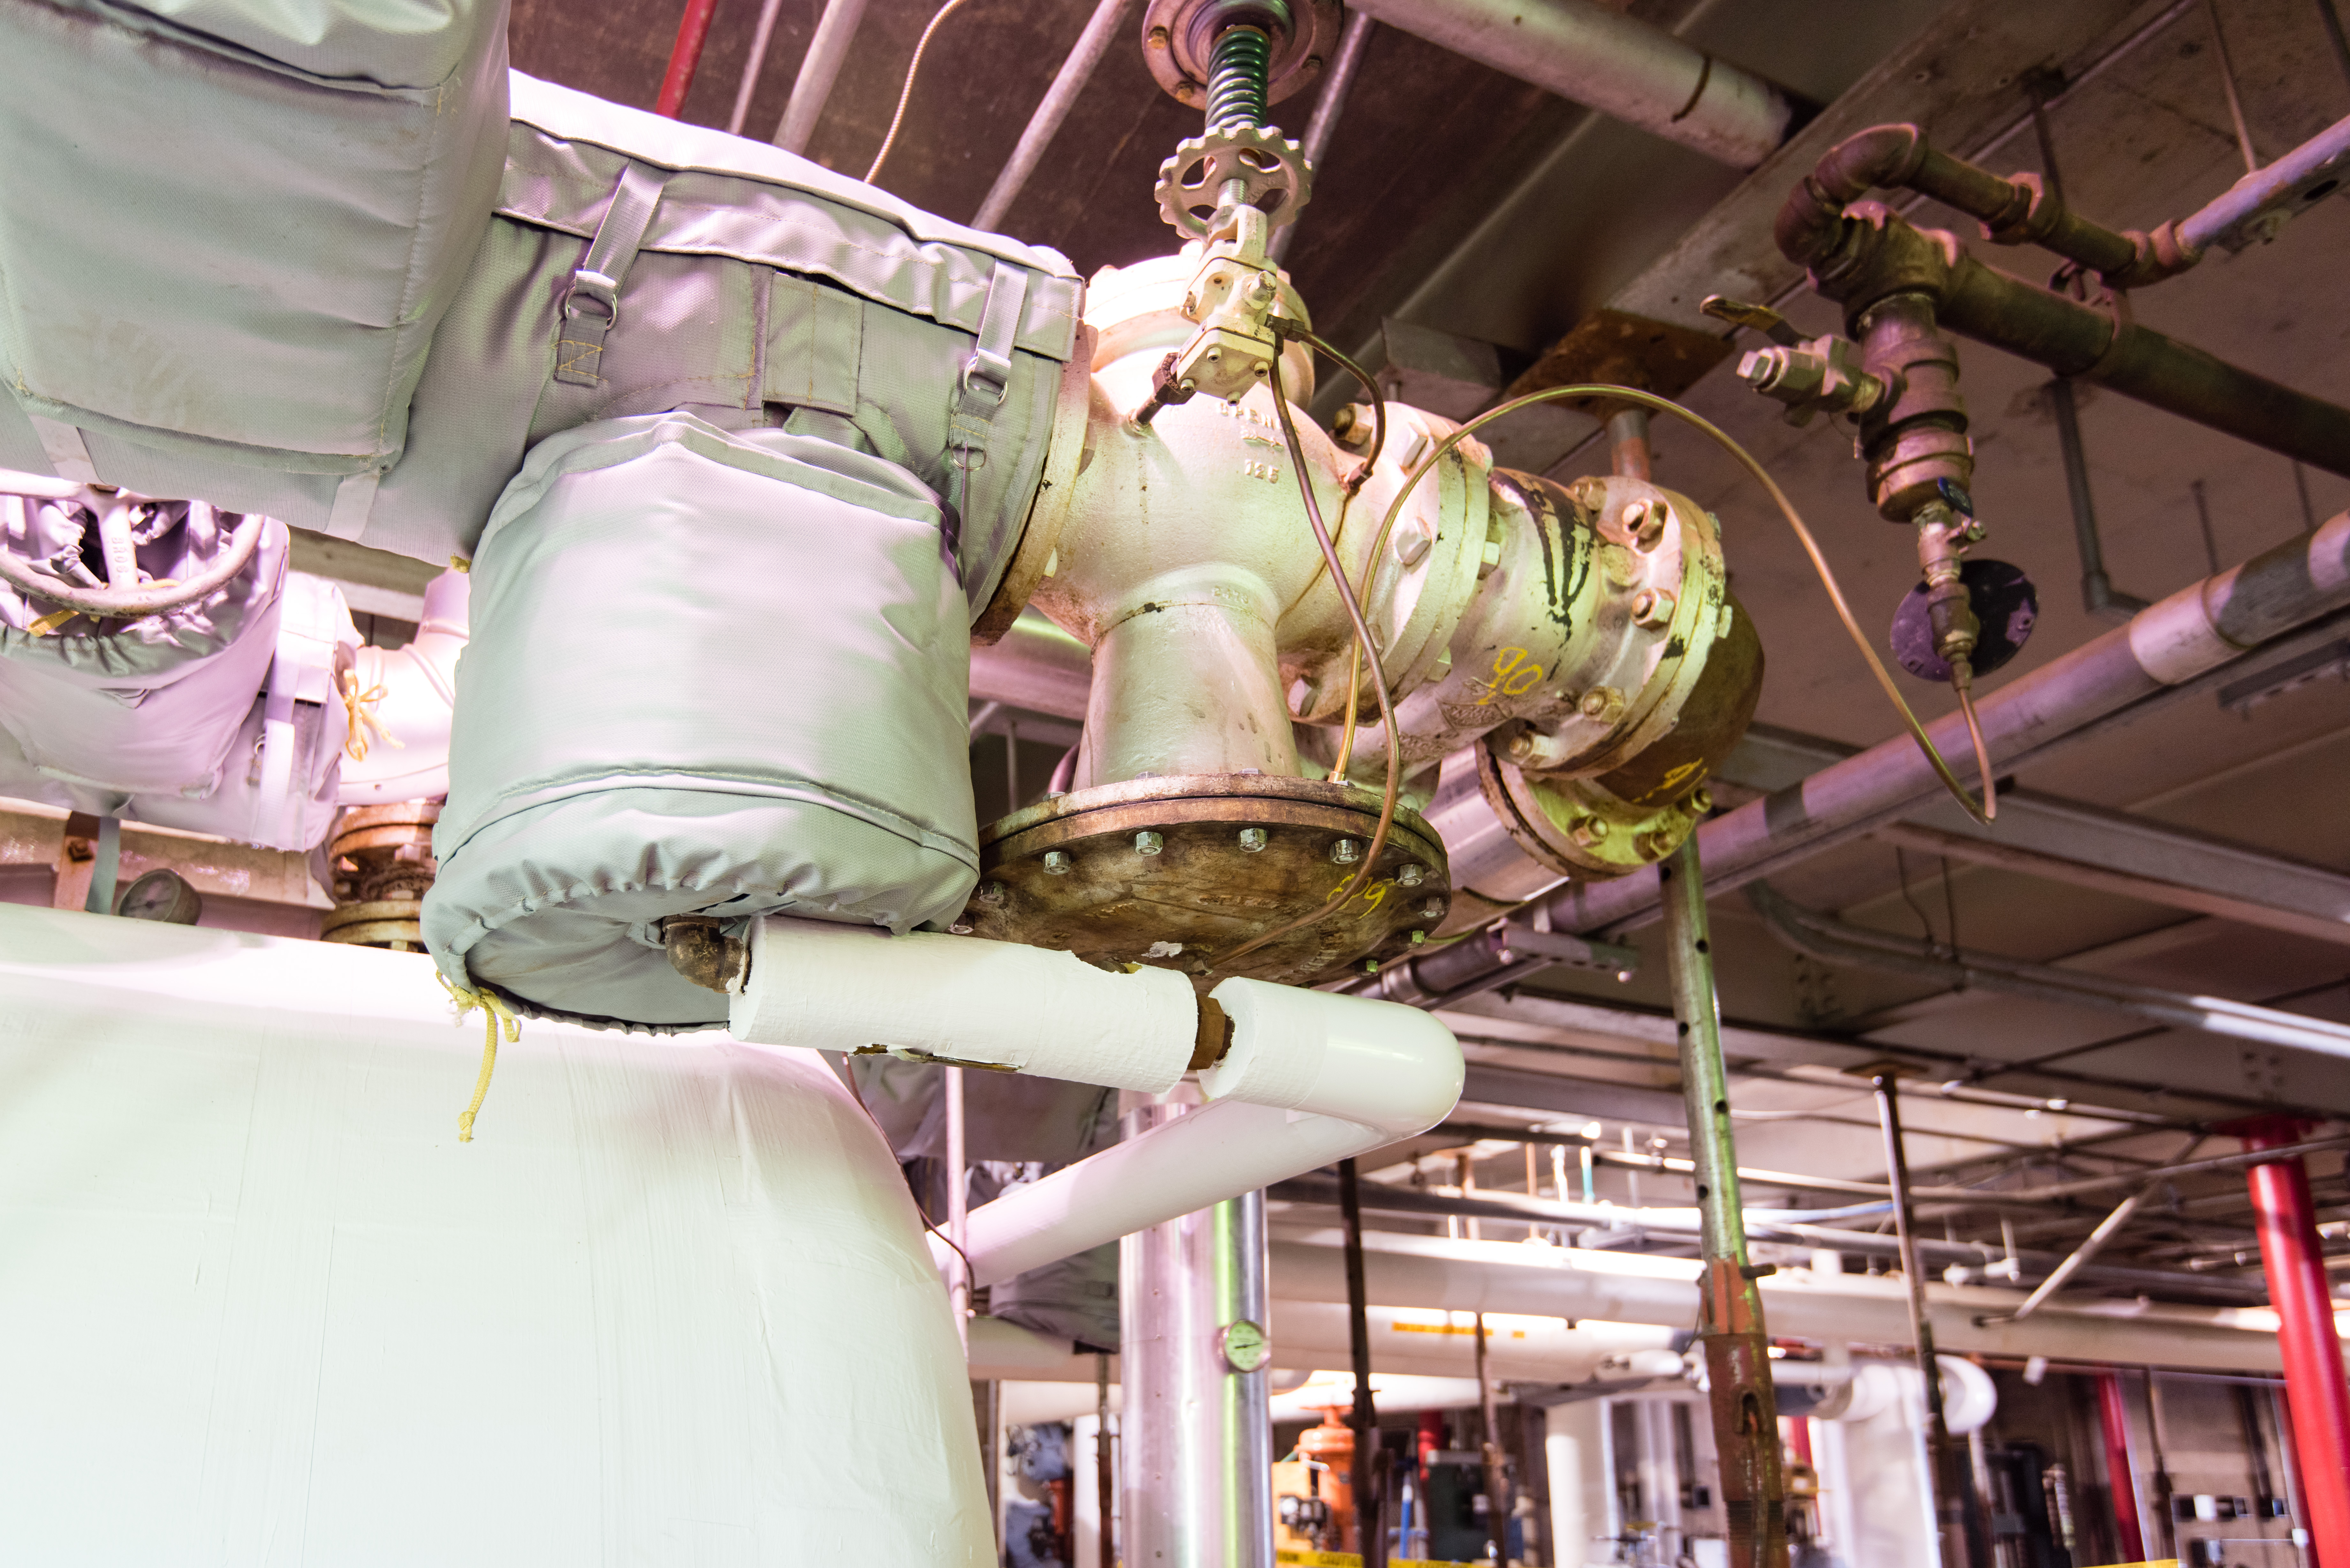 Mixed Valves Insulated by Thermaxx